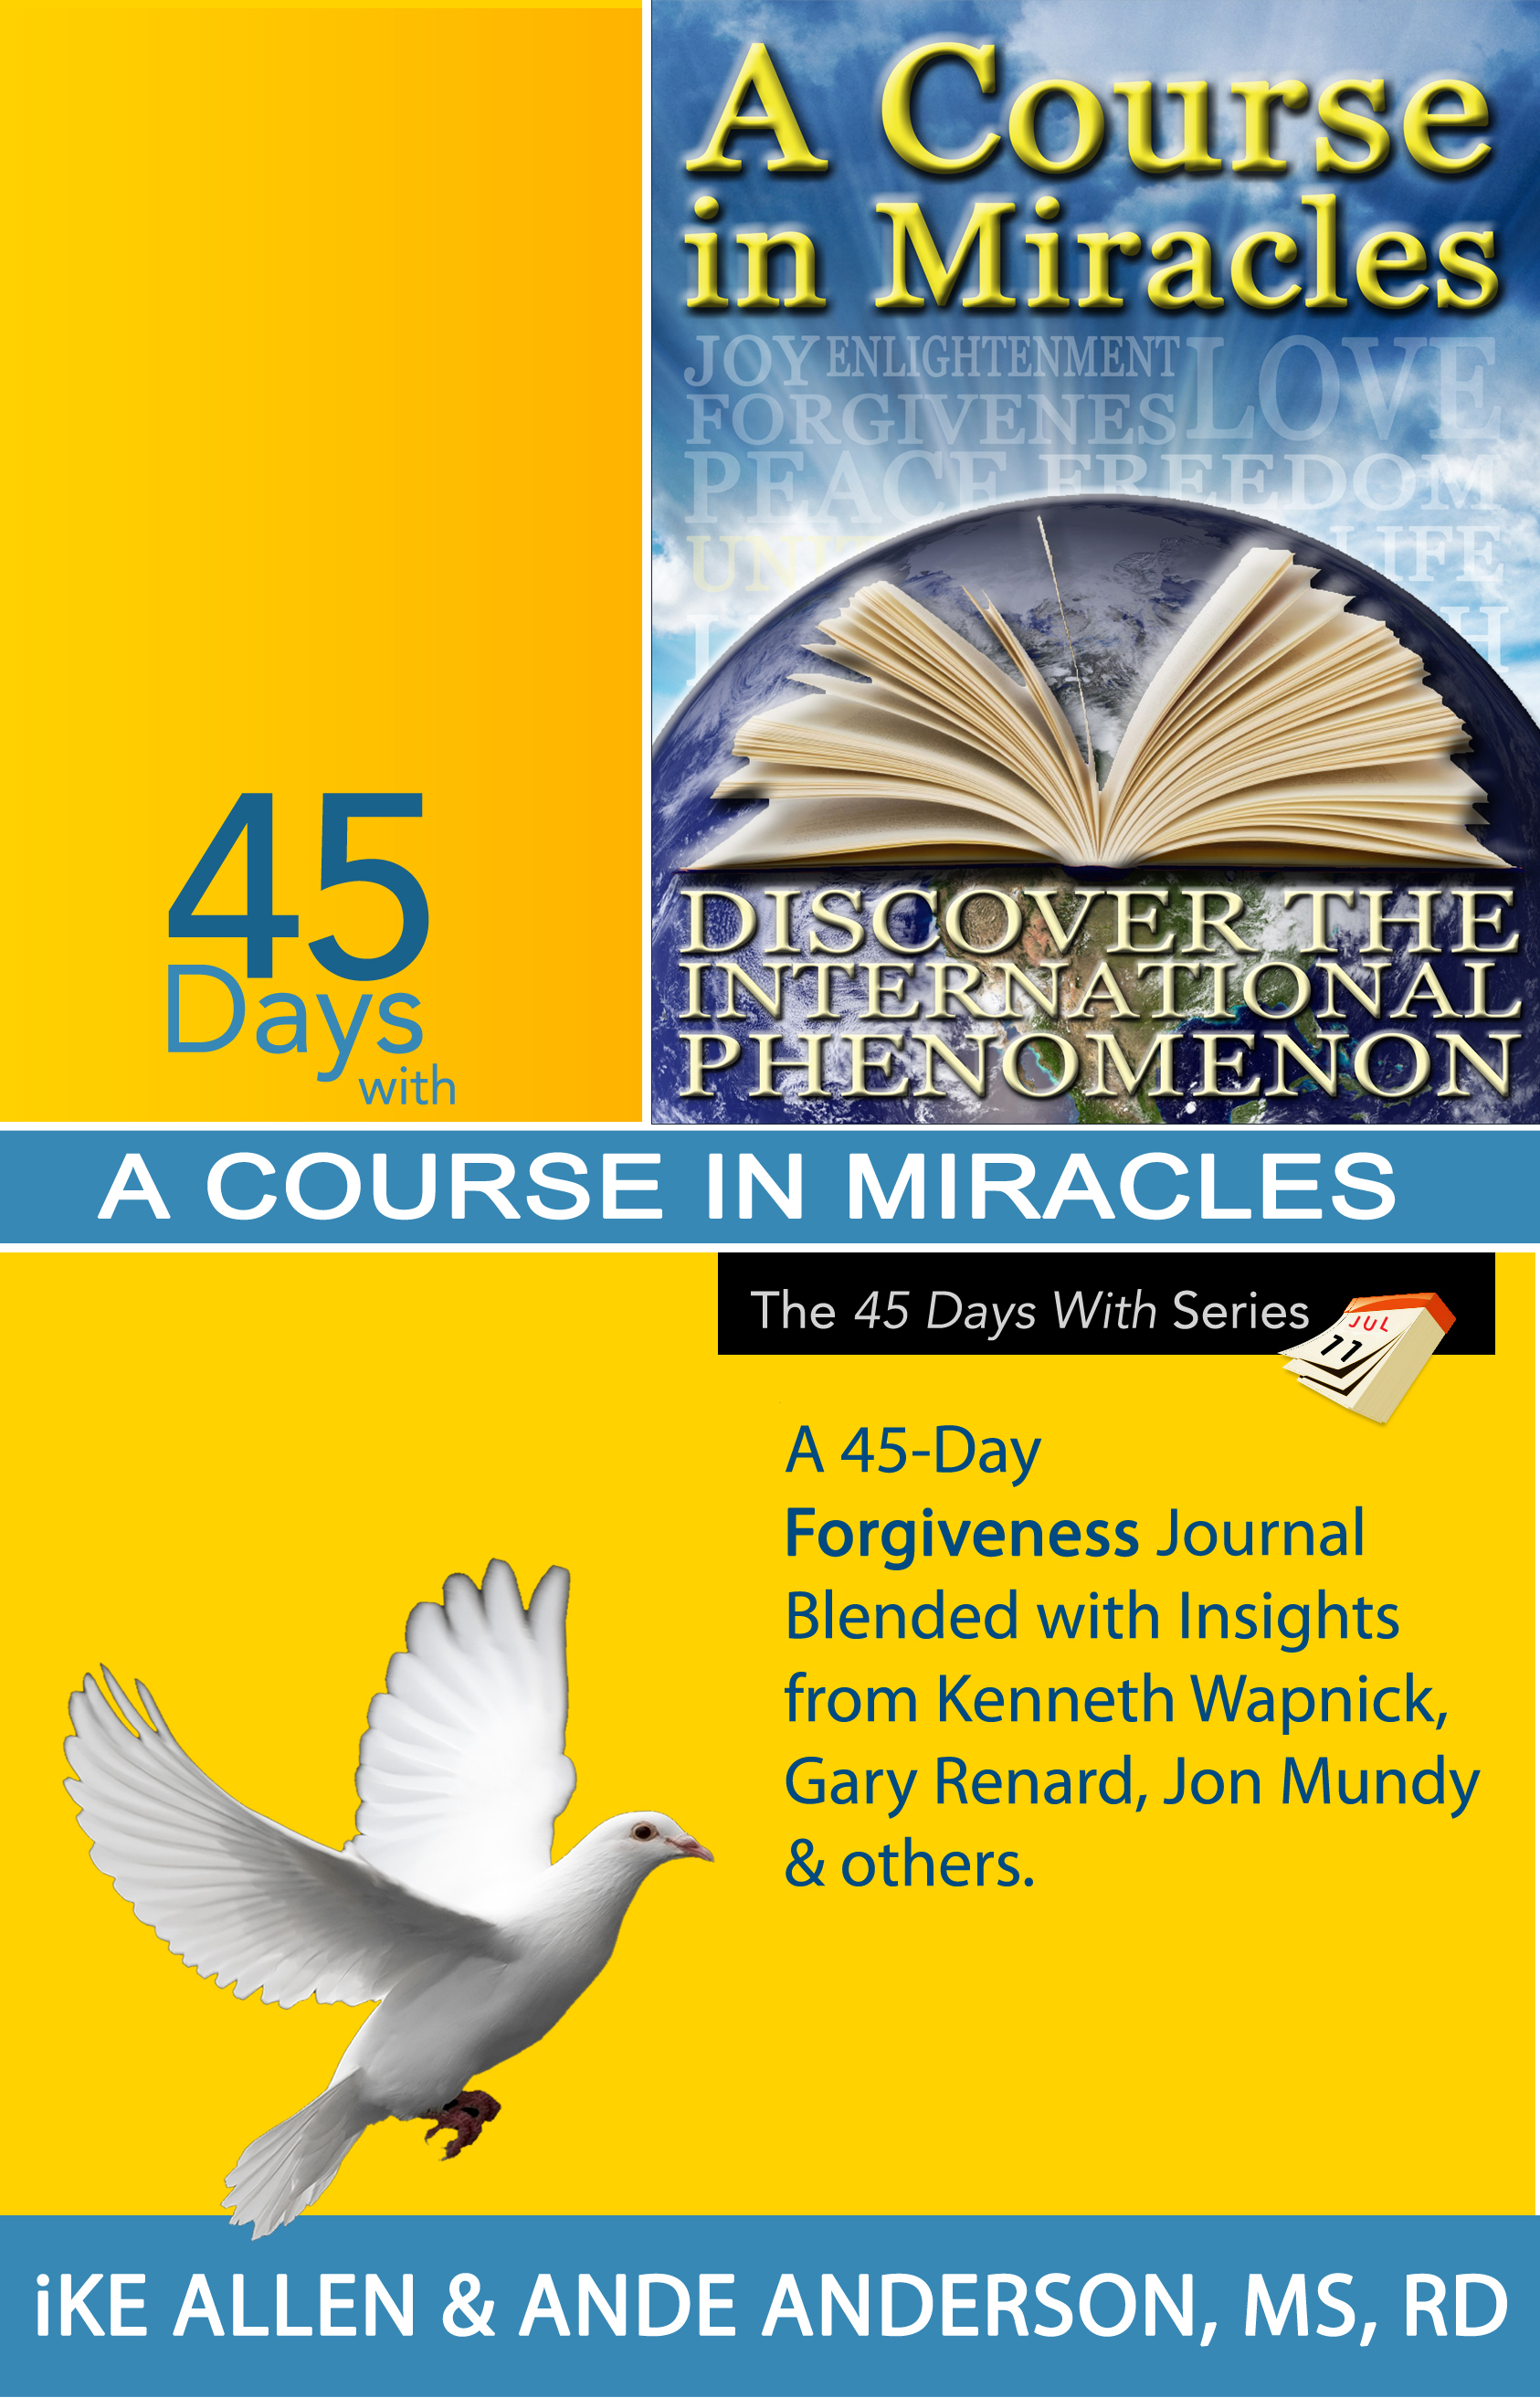 45 Days with A Course in Miracles